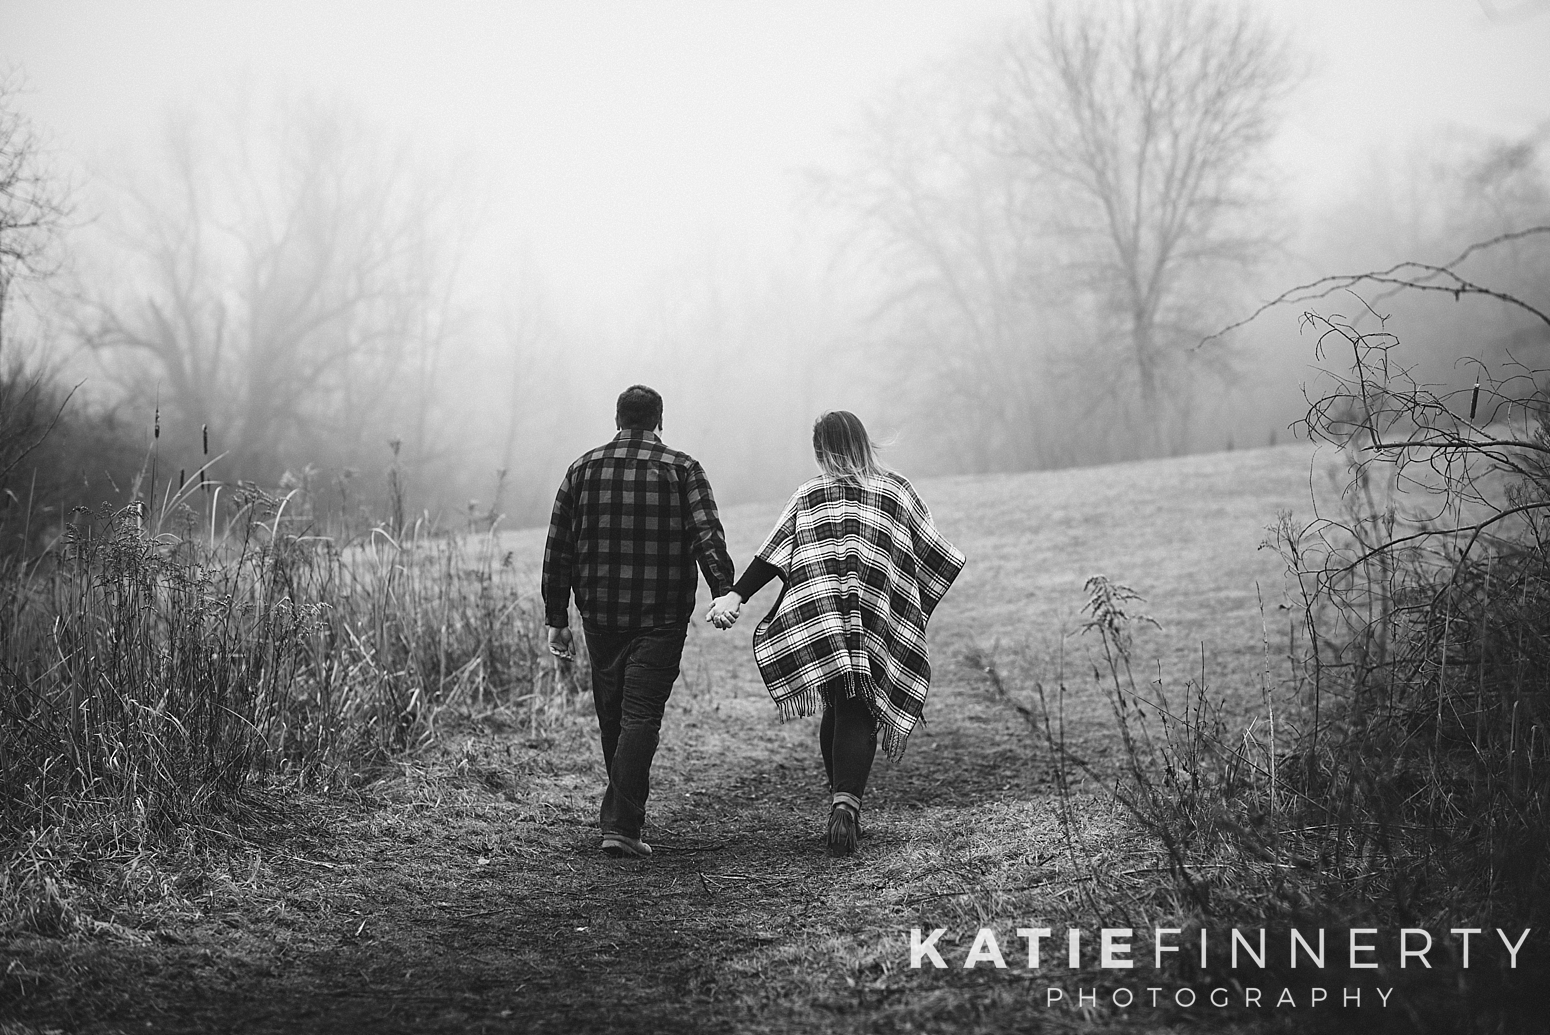 Rochester Mendon Ponds Park Engagement Session Photography